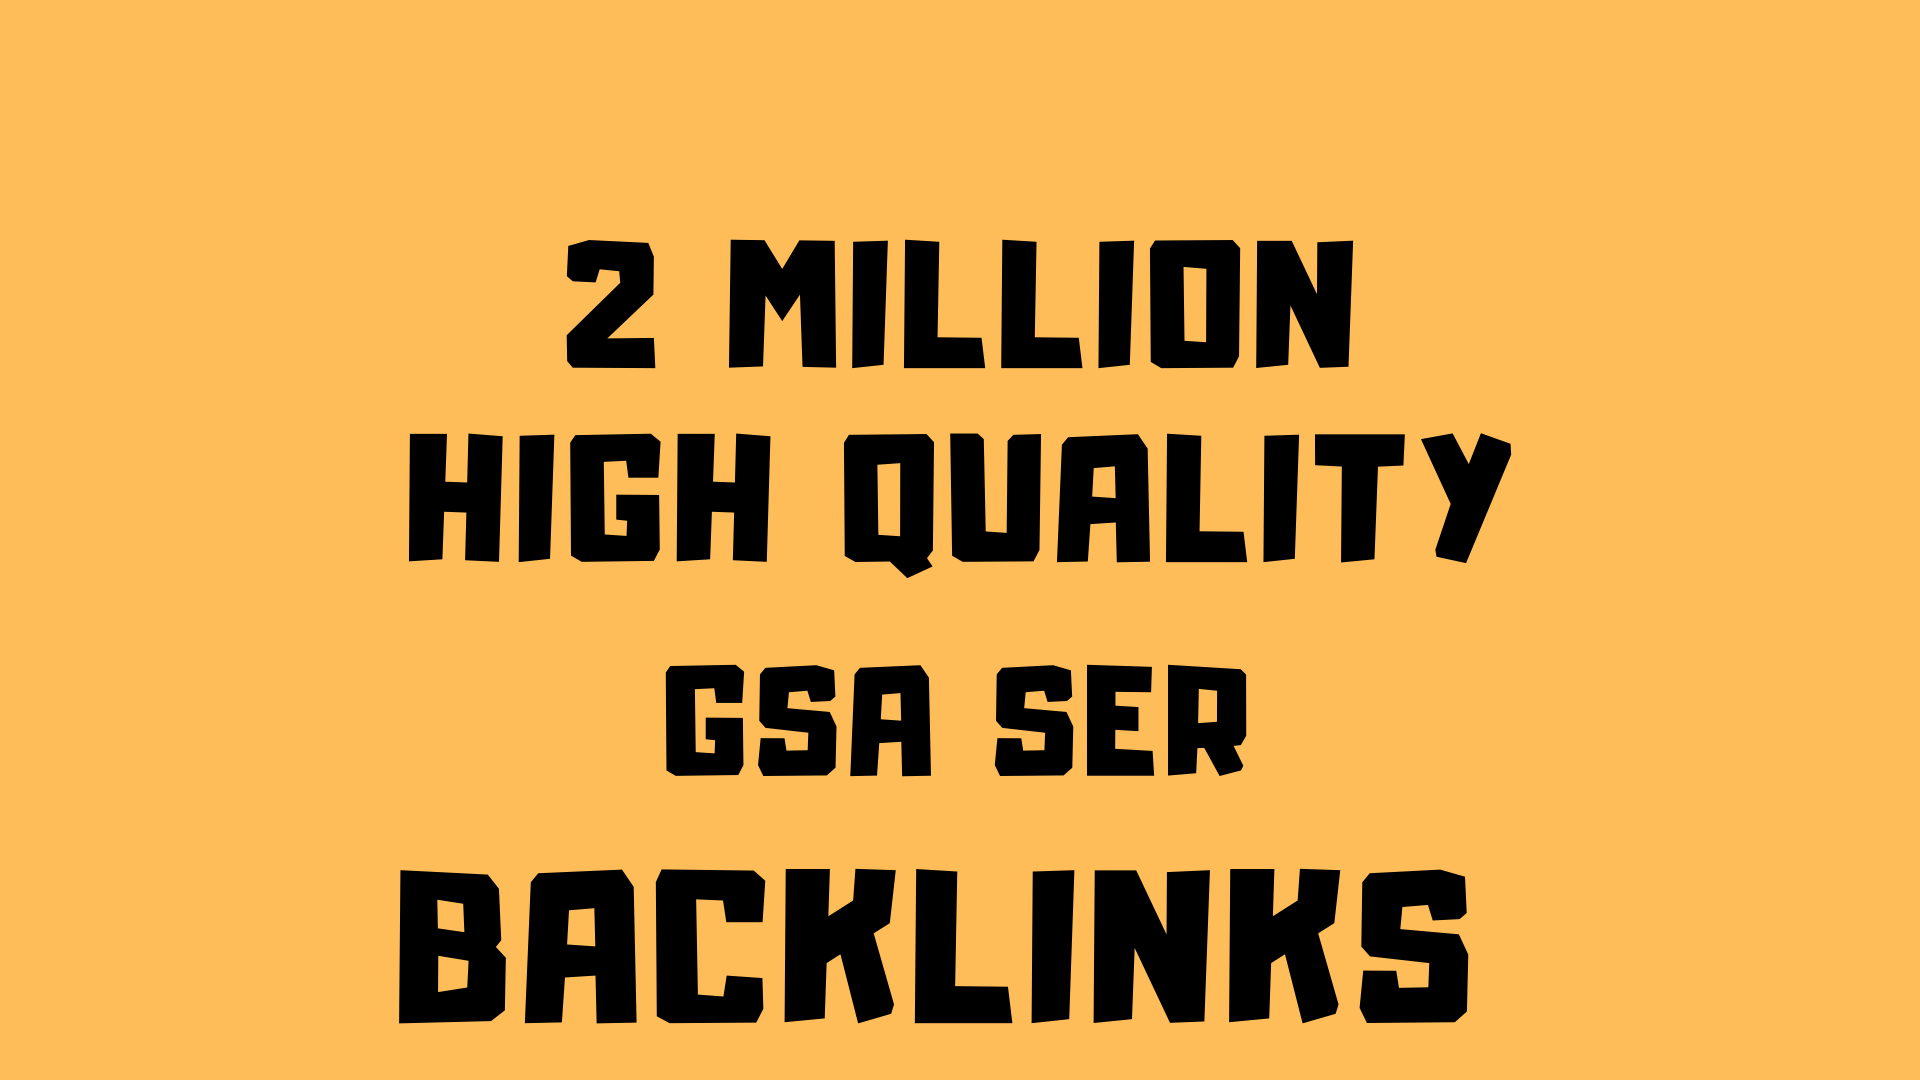 2M premium do-follow GSA Backlink to boost your ranking